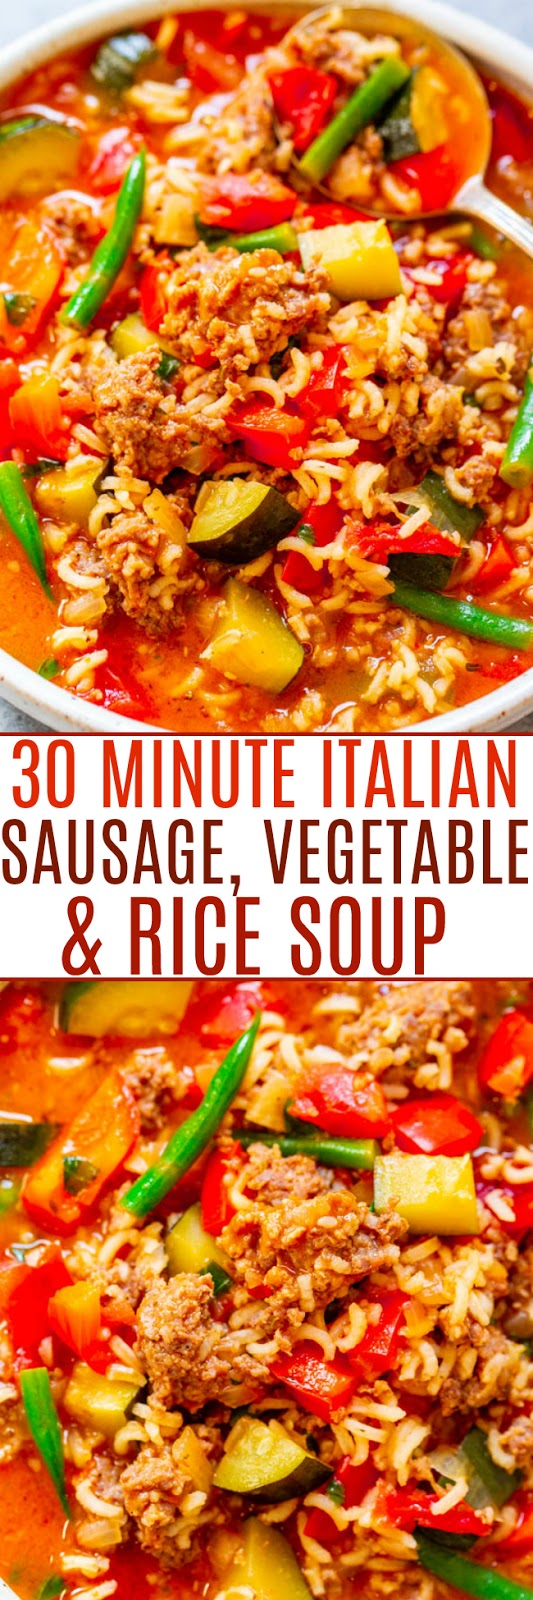 30-Minute Italian Sausage, Vegetable, and Rice Soup